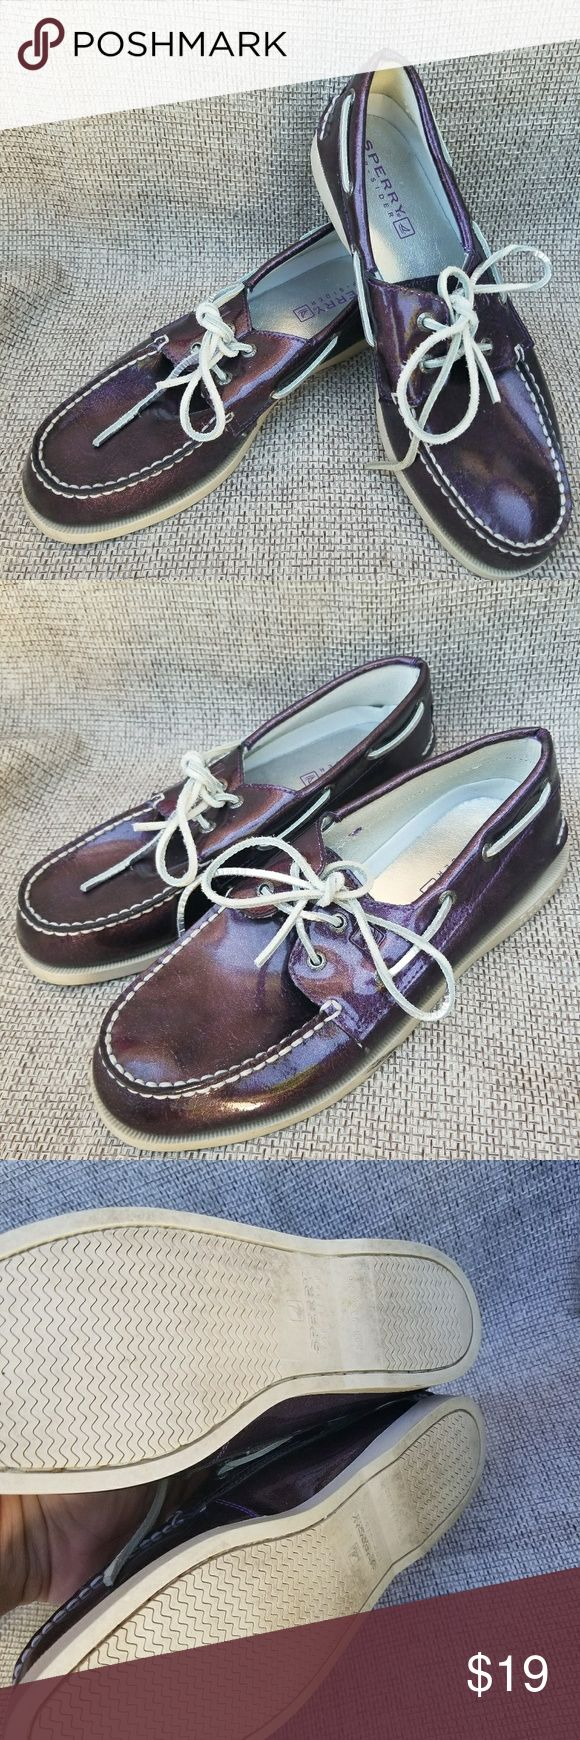 Ladies size 5.5M purple Sperry tip sider boat shoe Gently pre owned. Size 5.5 men's. #2 Sperry Top-Sider Shoes Flats & Loafers